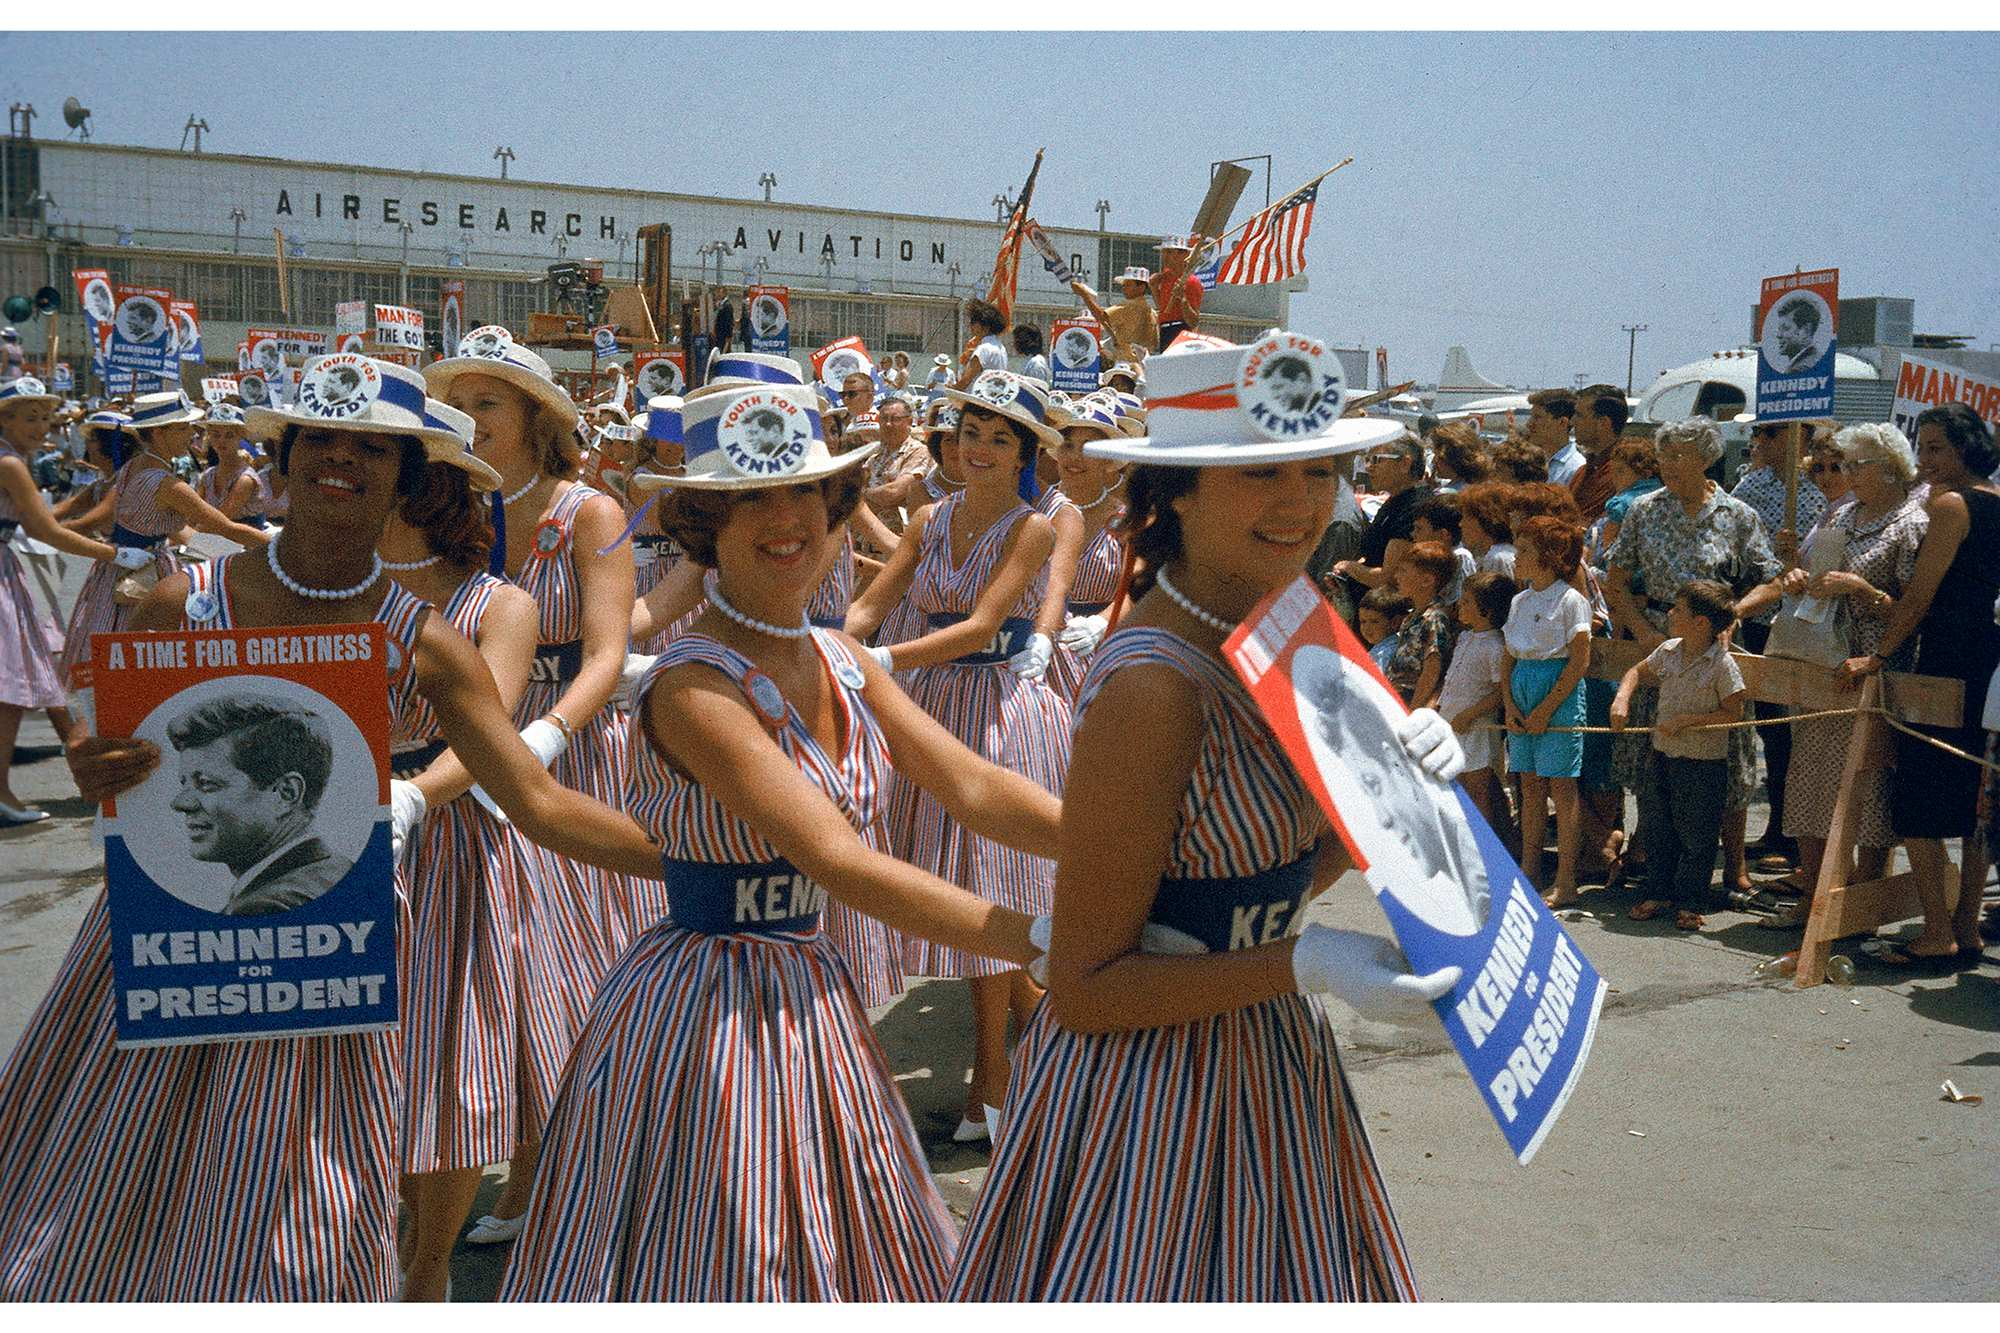 A group of young women at Los Angeles Airport wear matching red, white, and blue striped dresses and hold placards that read 'A Time for Greatness: Kennedy for President' as they await the arrival of presidential hopeful Senator John Kennedy, in town for the Democratic National Convention, Los Angeles, California, July 1960. | <span>Photo by Hank Walker/The LIFE Picture Collection/Getty Images</span>